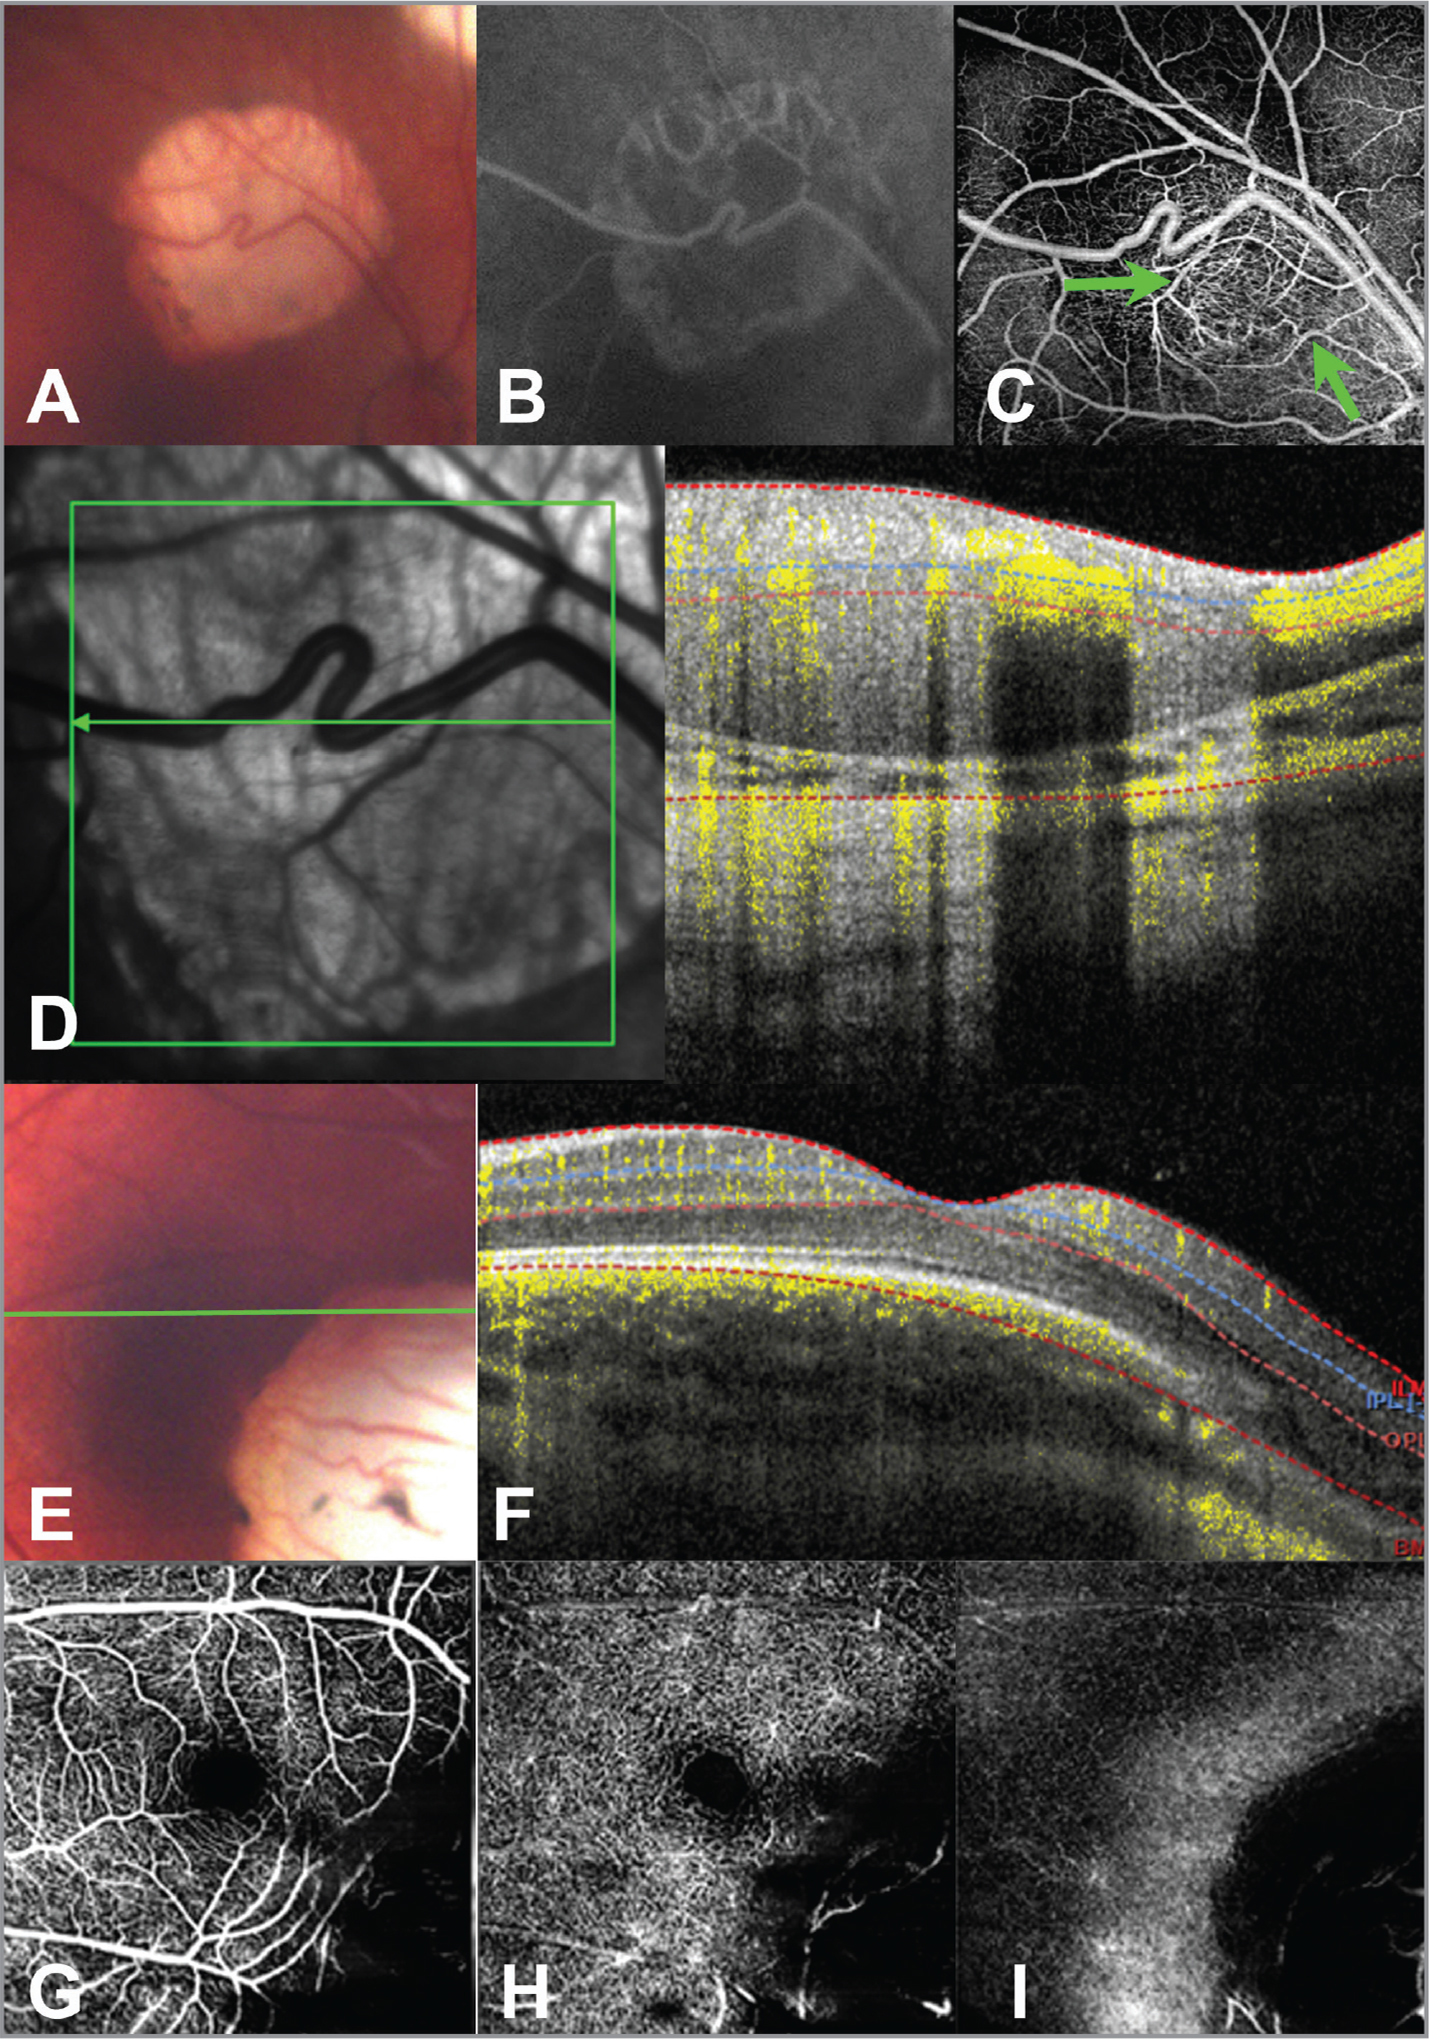 Multimodal imaging of Case 1. Fundus photo of a retinoblastoma lesion with type 2 regression in the right eye (A). Mid-phase fluorescein angiography of this lesion (B) did not reveal any obvious feeder vessels or intrinsic vascularity. (C) En face 20 ° × 20° optical coherence tomography angiography (OCTA) of the lesion revealed a circumferential network of feeder and draining vessels (arrows) around the noncalcified remnant of the tumor and prominent intrinsic vascularity to this remnant. (D) OCT B-scan with flow overlay of the lesion. This lesion was treated with transpupillary thermotherapy. Fundus photo of the left eye (E) showing a portion of a retinoblastoma lesion with type 4 regression. A horizontal line scan with OCTA flow overlay (F) demonstrates lack of flow signal in the regressed tumor. En face 20° × 20° OCTA of this lesion showed minimal vascularity in the superficial vascular complex (G), deep vascular complex (H), and choriocapillaris (I). This lesion was observed.